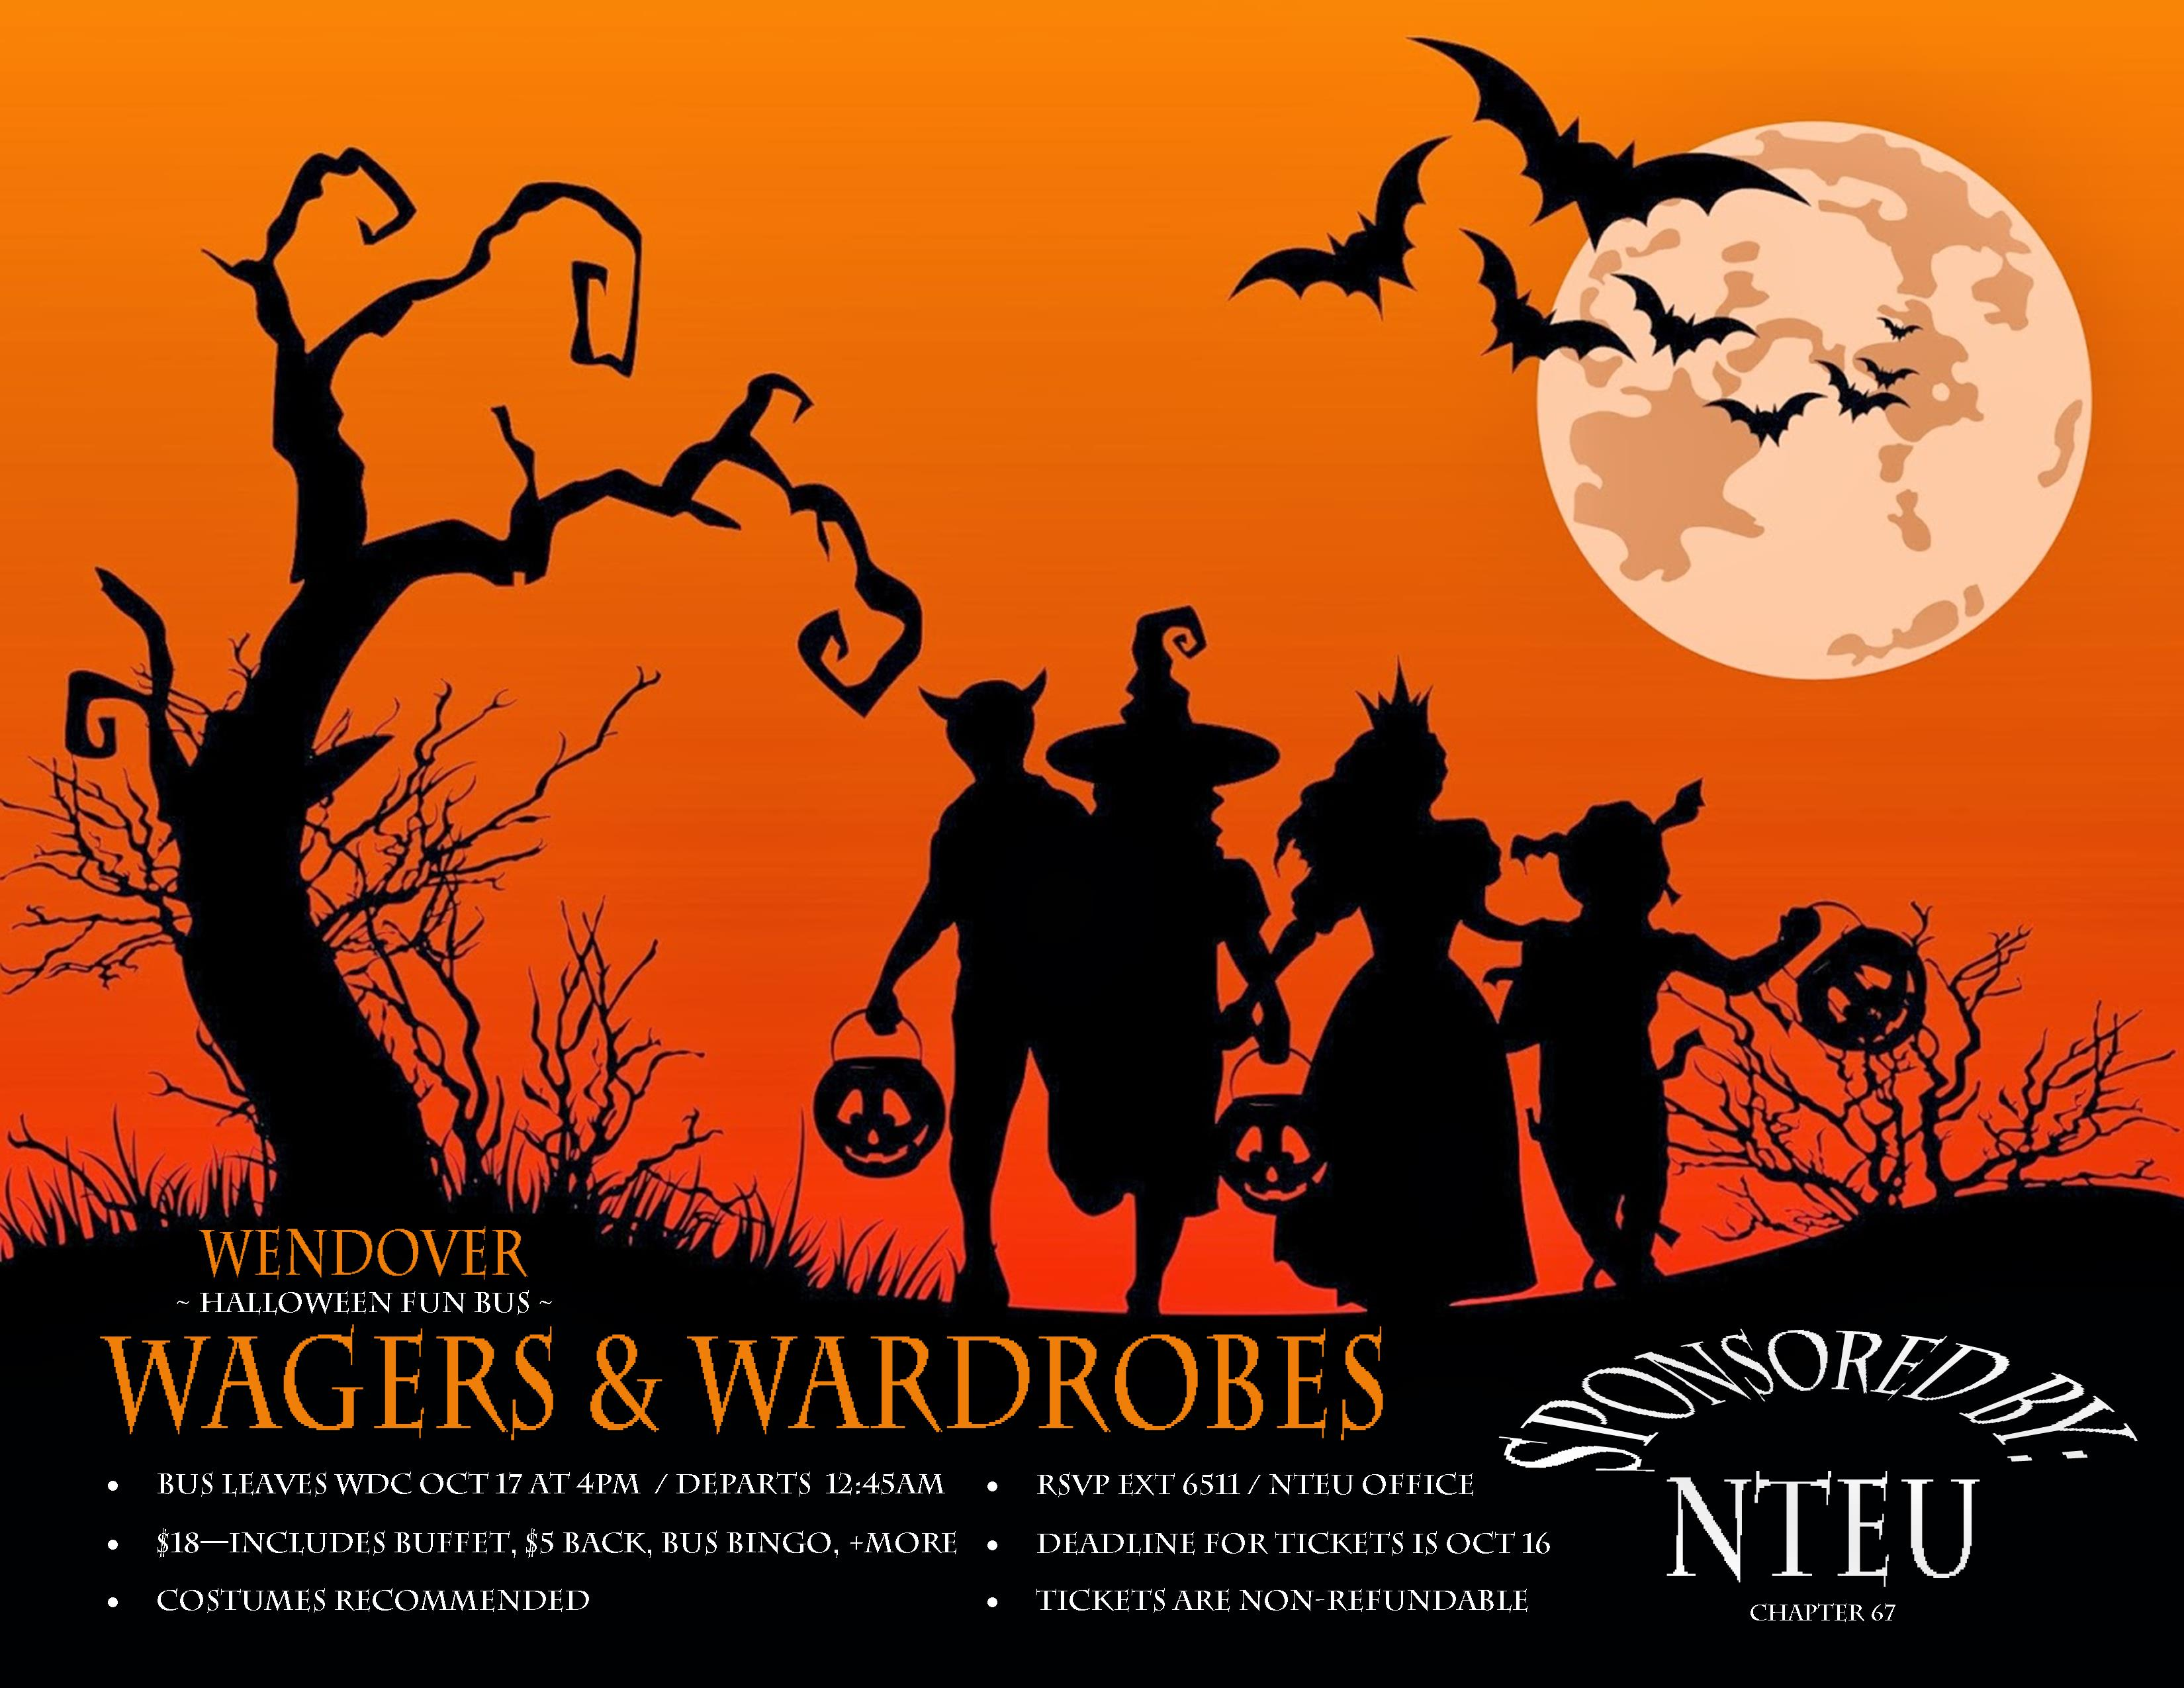 nteu chapter 67 - events - wagers and wardrobes - a halloween fun